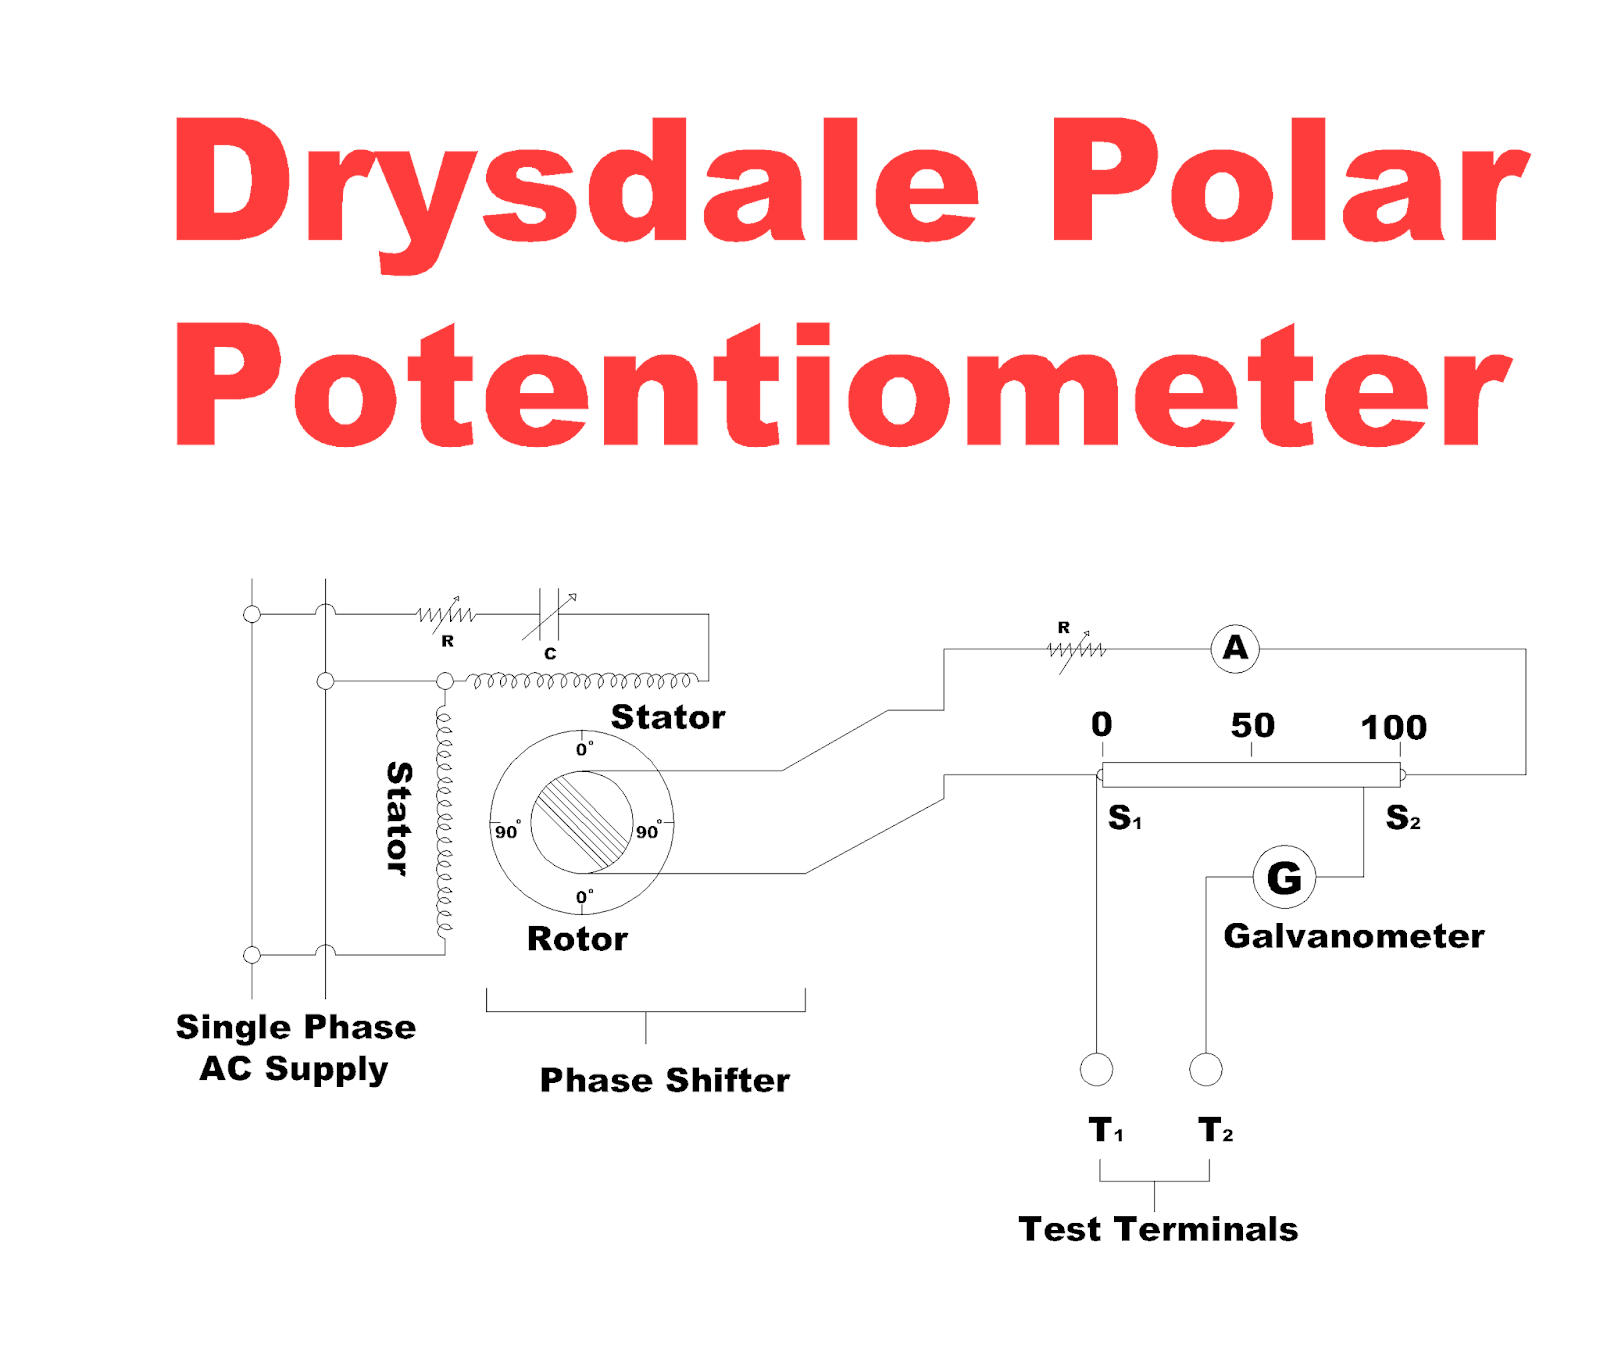 Potentiometer - Construction - Working Principle - Types of Potentiometer -  Symbol of potentiometer - Applications of Potentiometer - Difference  Between Rheostat and Potentiometer - Resolution of Potentiometer -  Conformity of Potentiometer - Advantages ...freely electrons - blogger